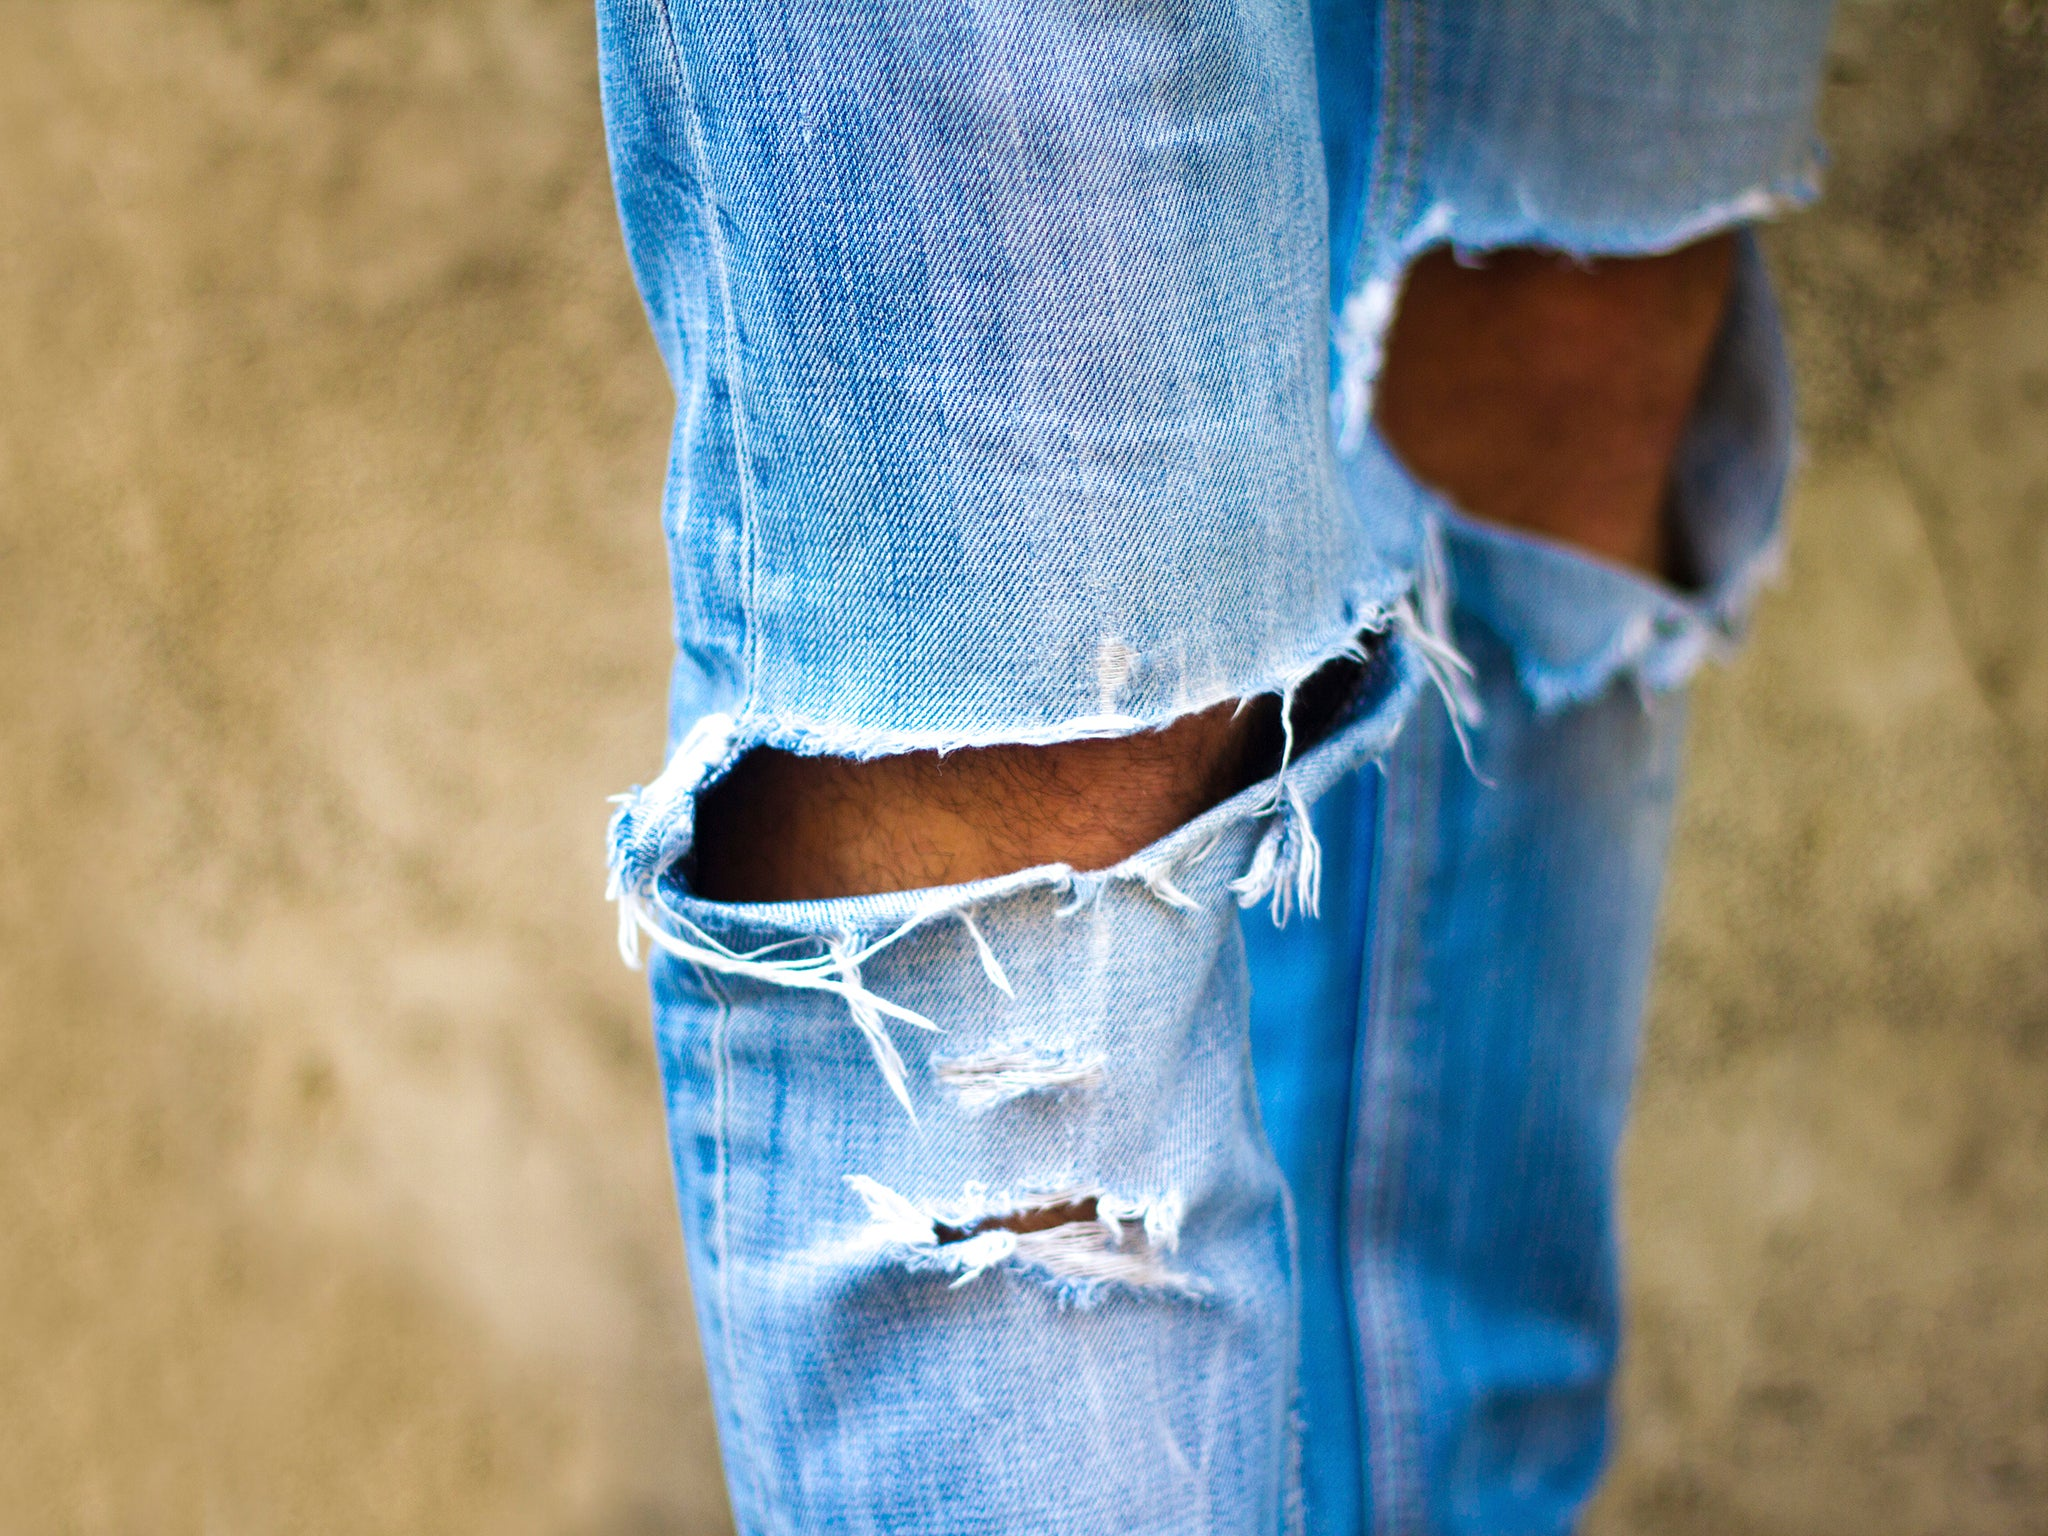 Here's what happens if you never wash your jeans